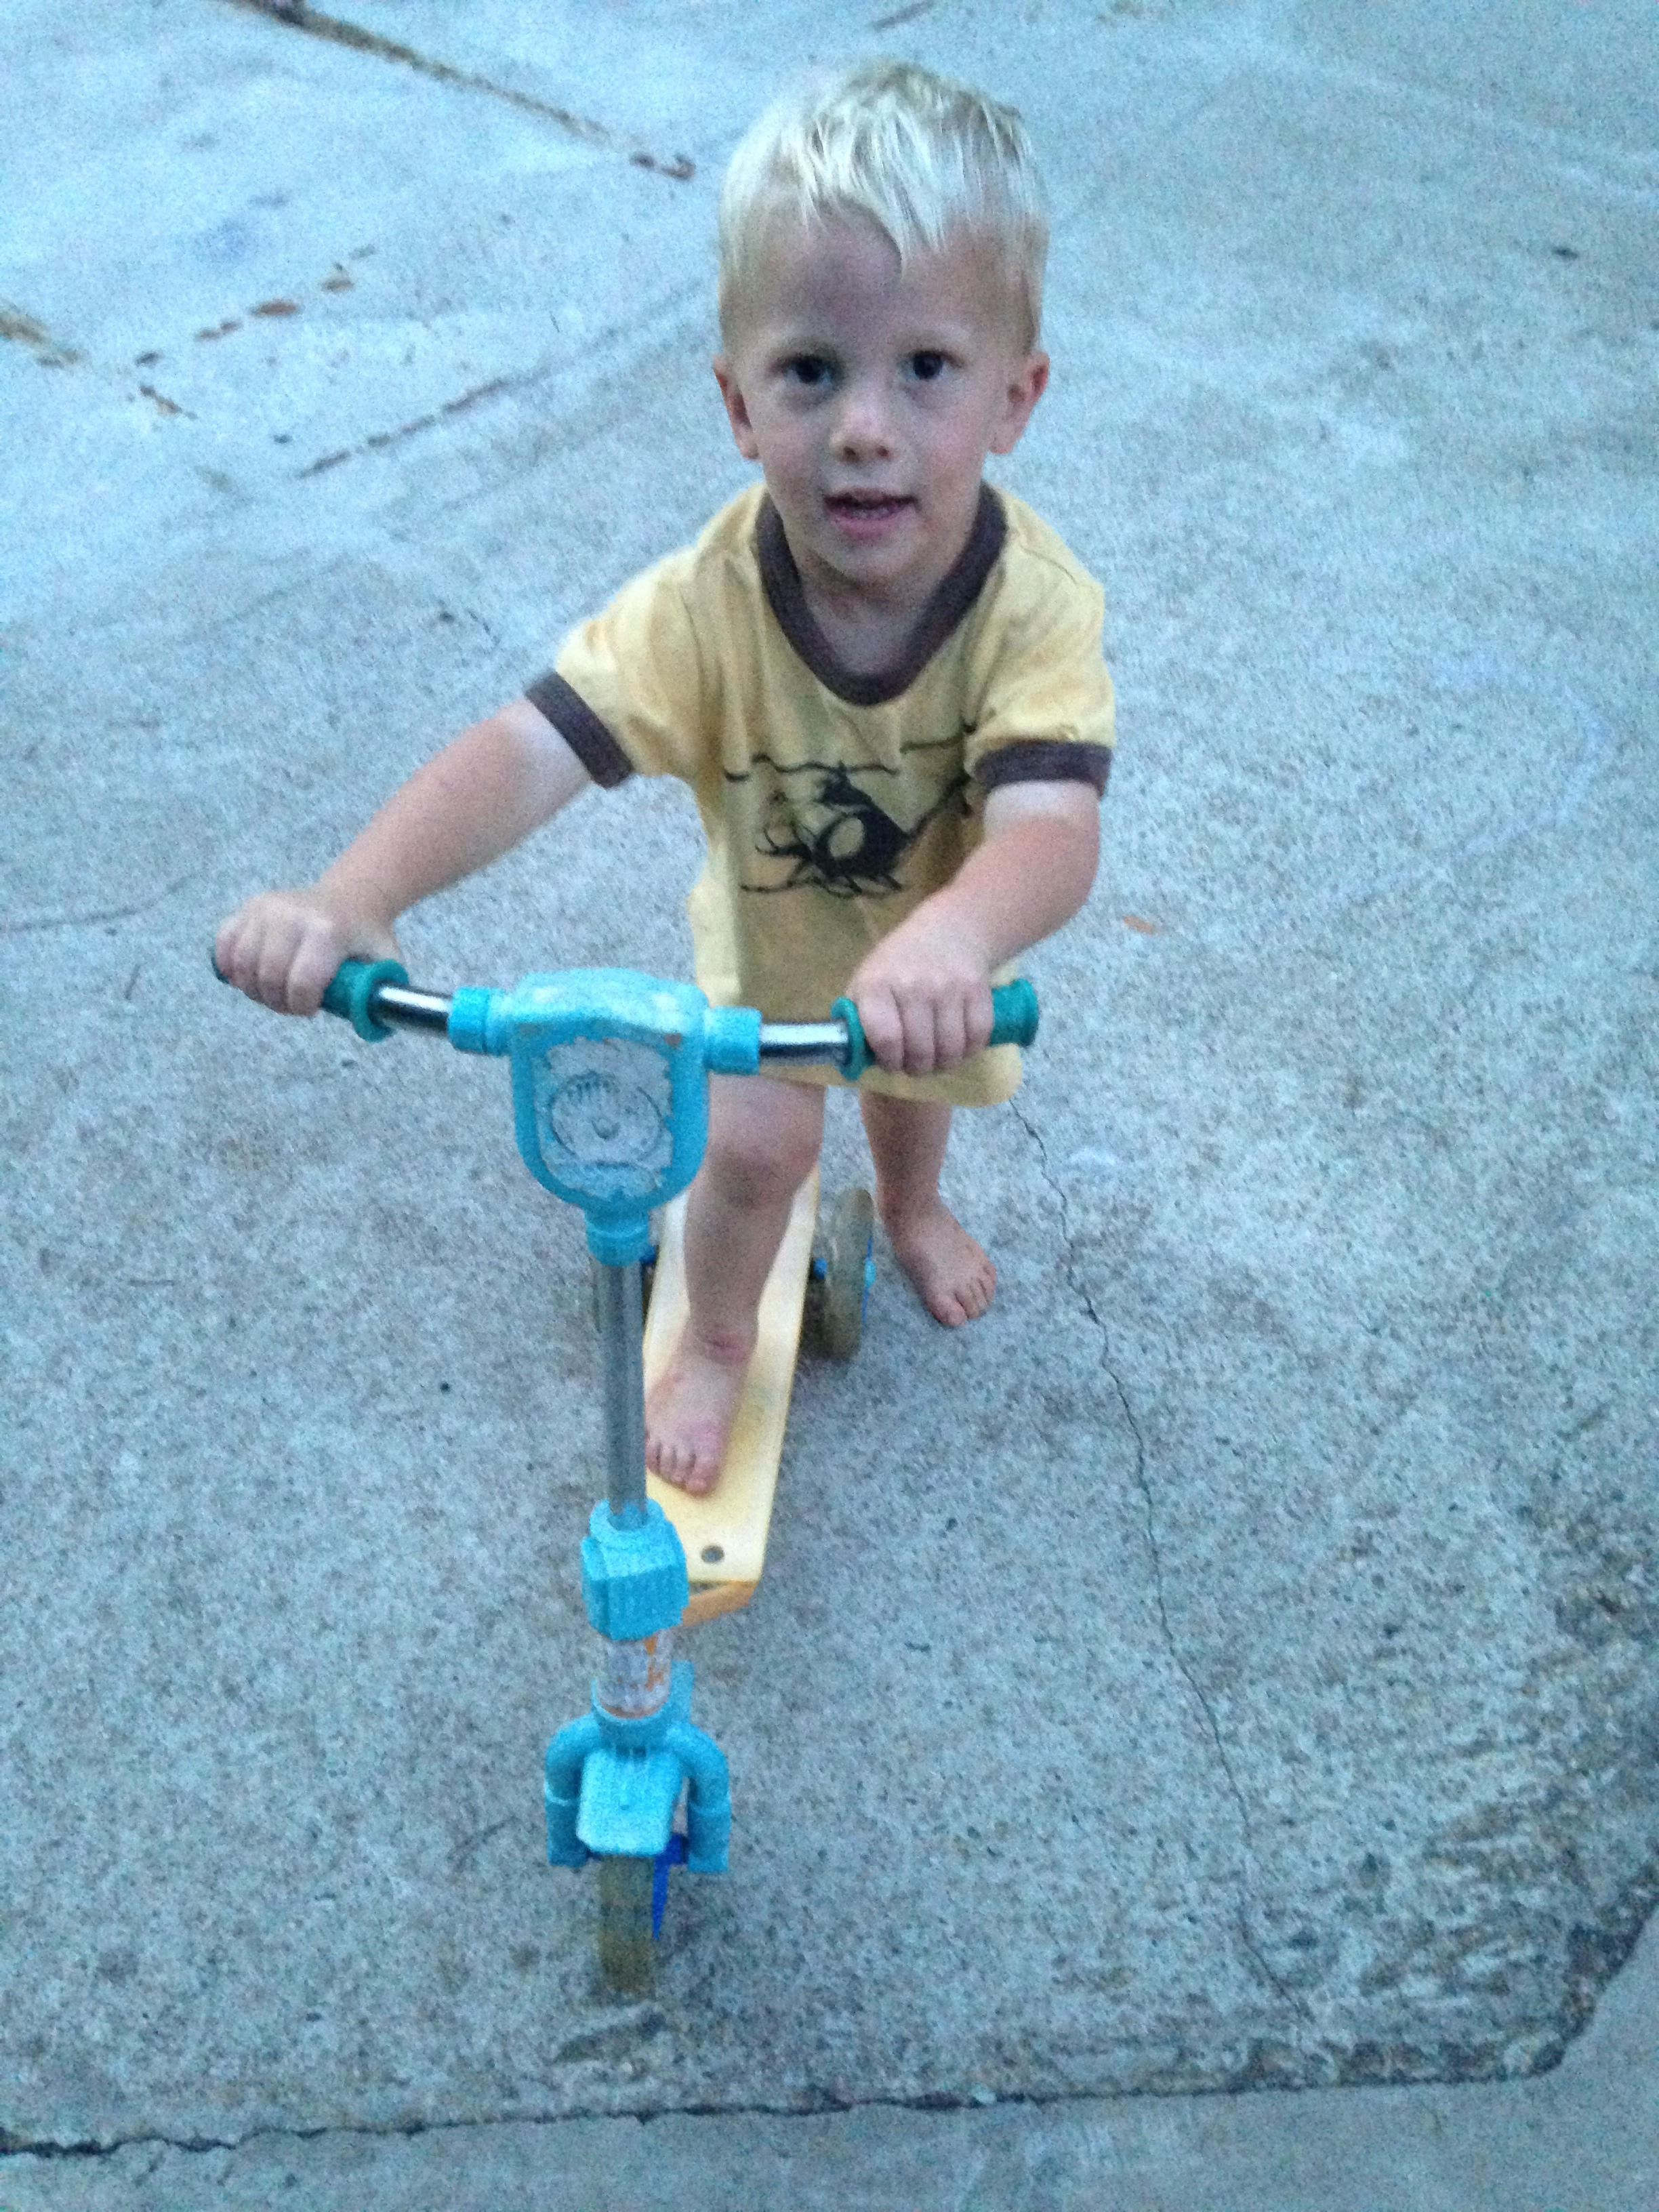 Kolby inherited Kaylin's old scooter. He can truck around on it.